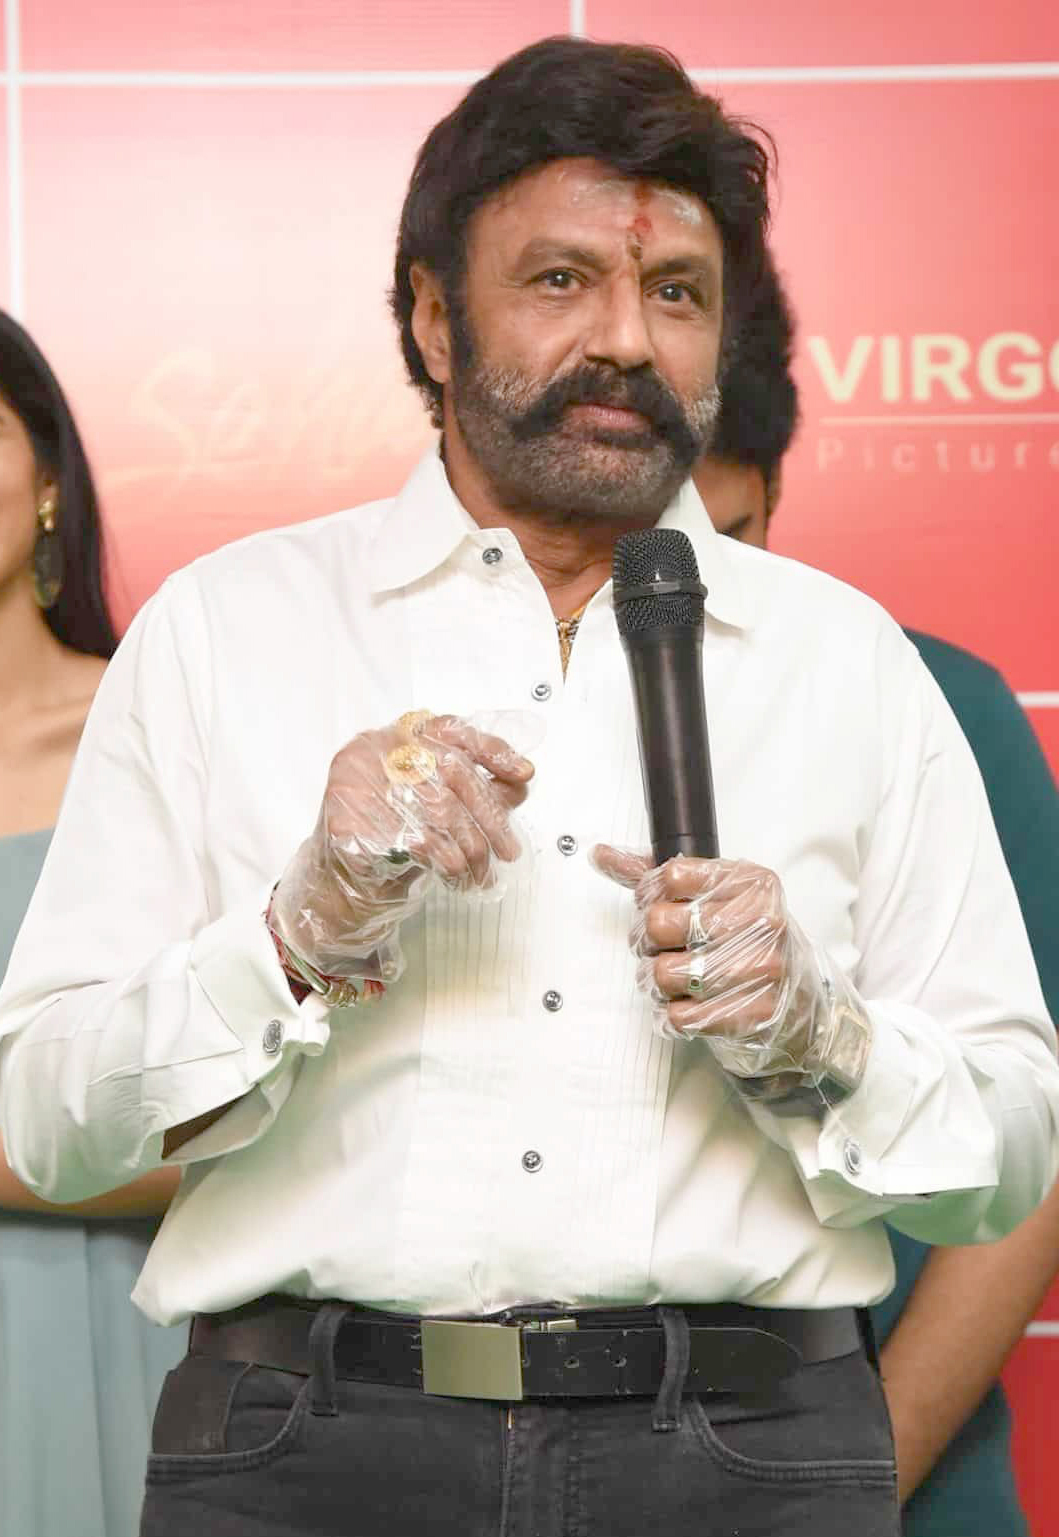 Balayya Interview: It's a CBN Ploy to Eliminate NTR!